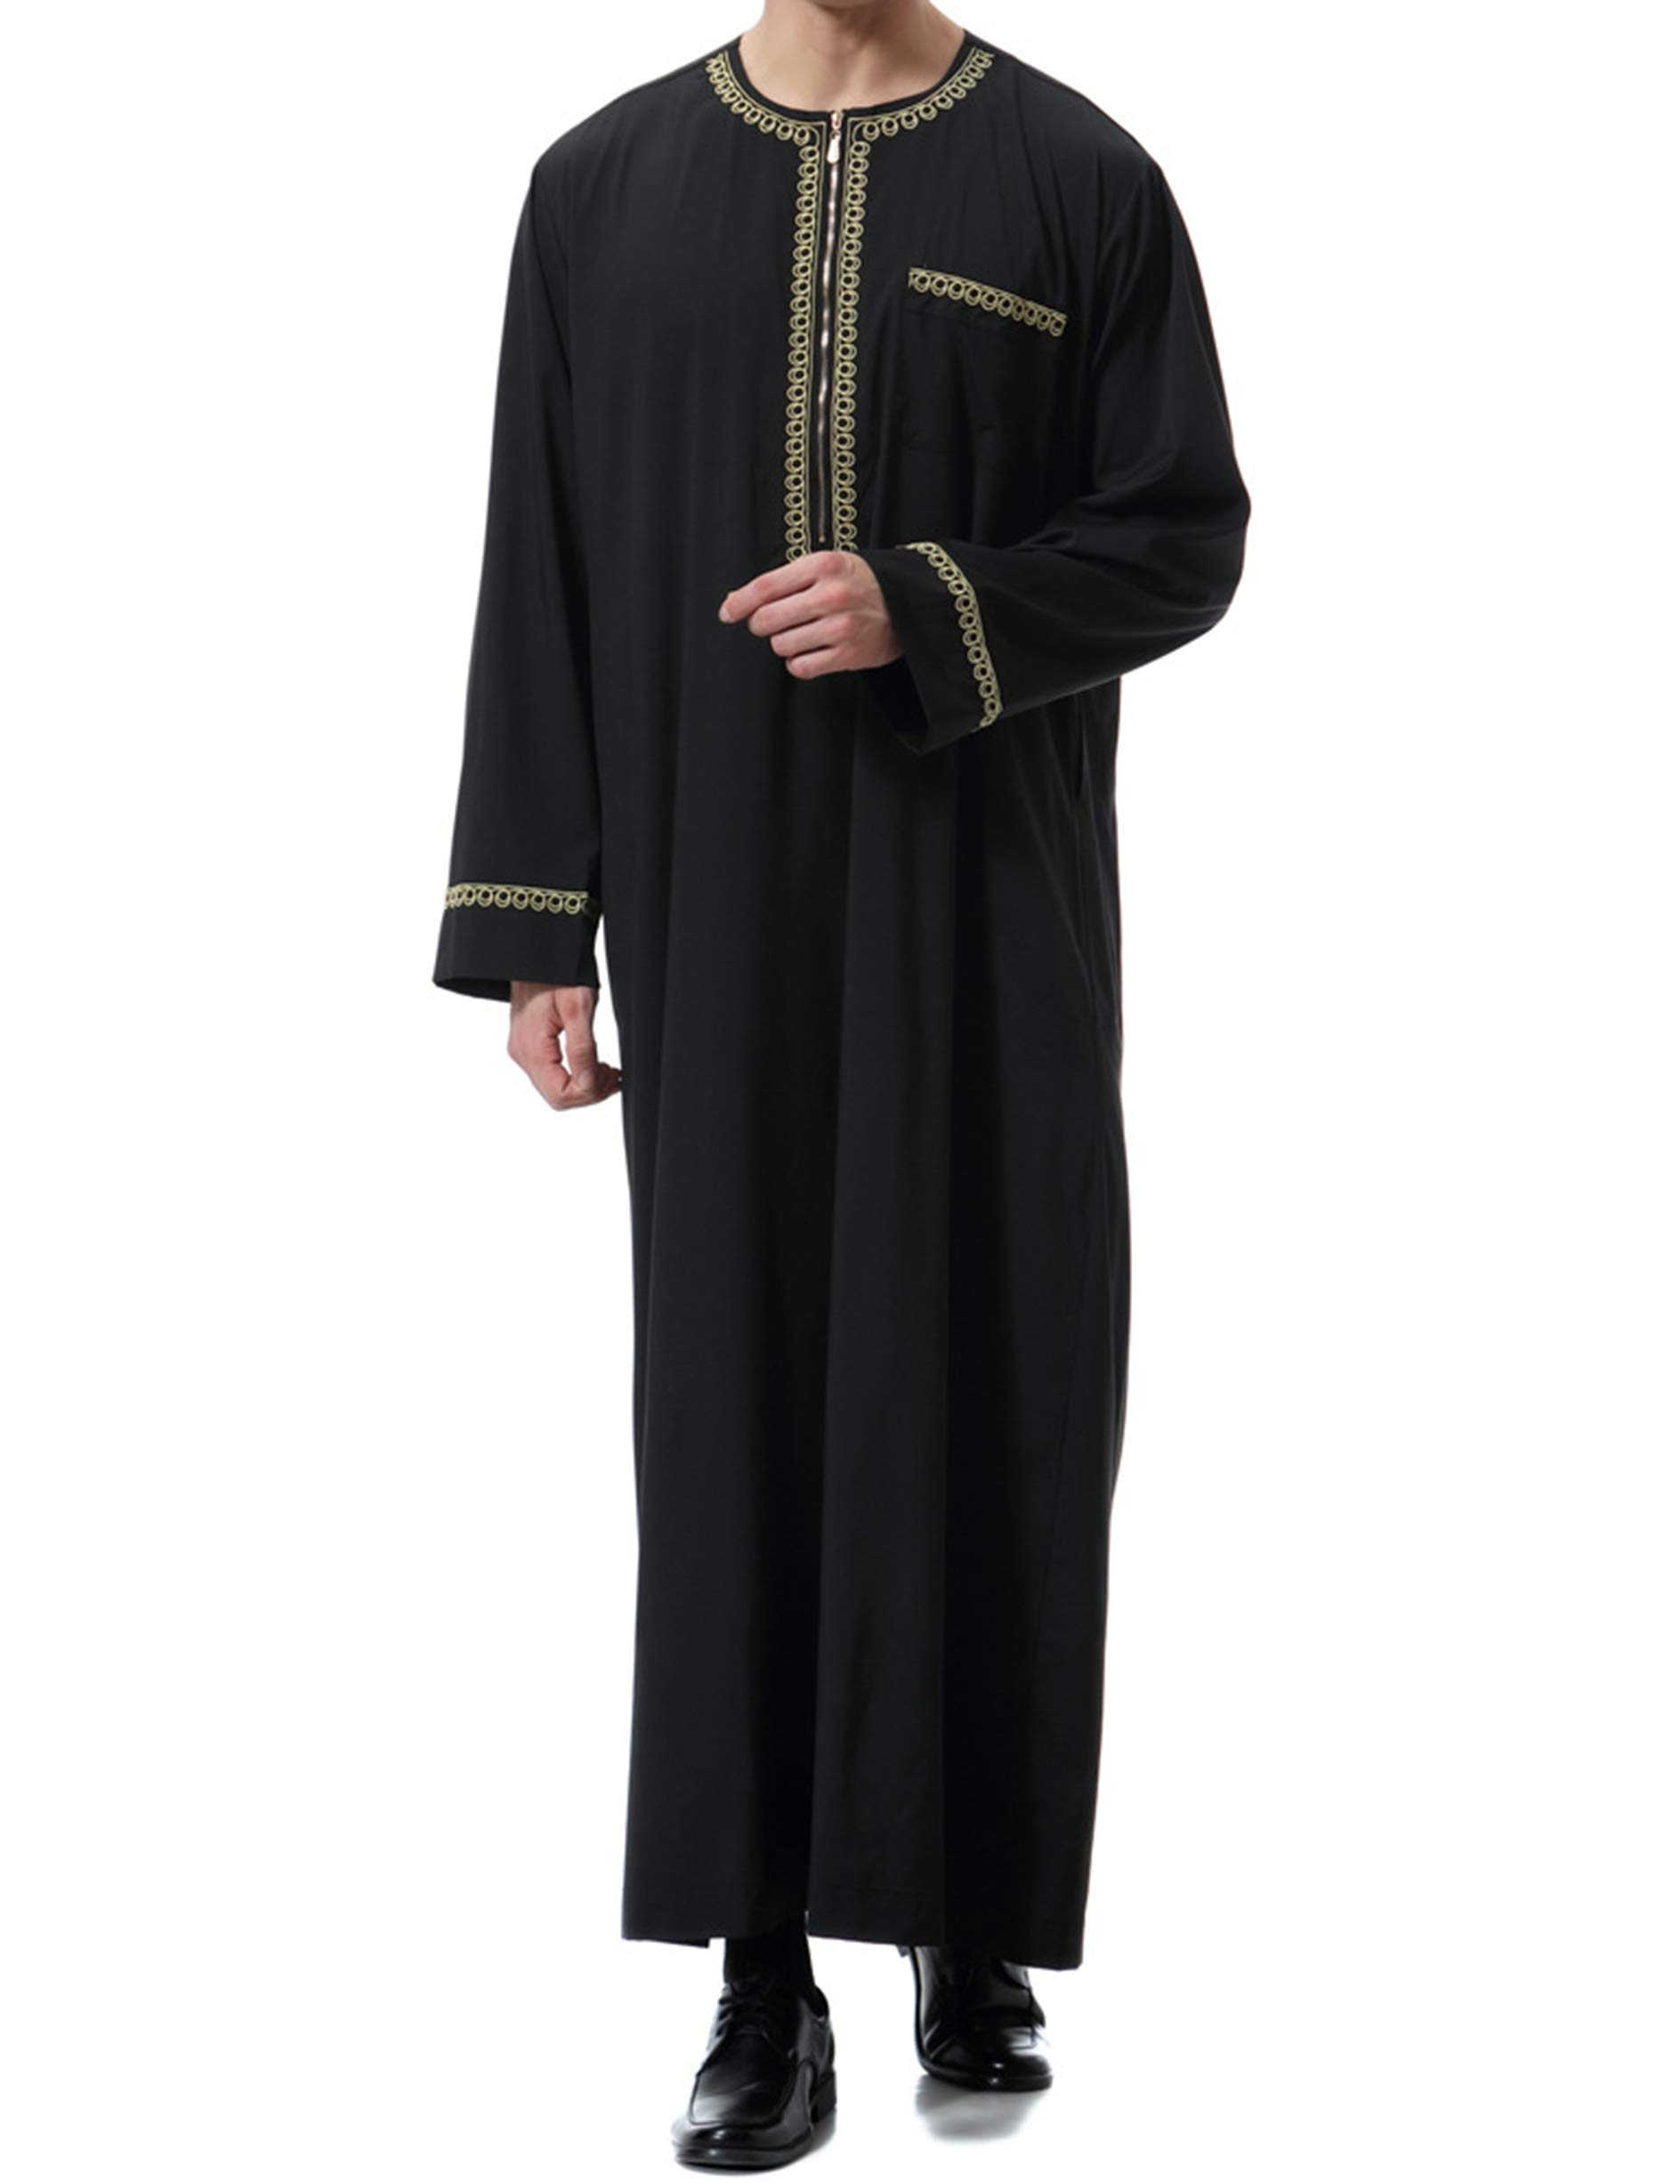 Islamic Mens Clothing Kaftan Maxi-Muslim Male Shirt Long Sleeve Abaya Dubai Cotton (Black,XL)